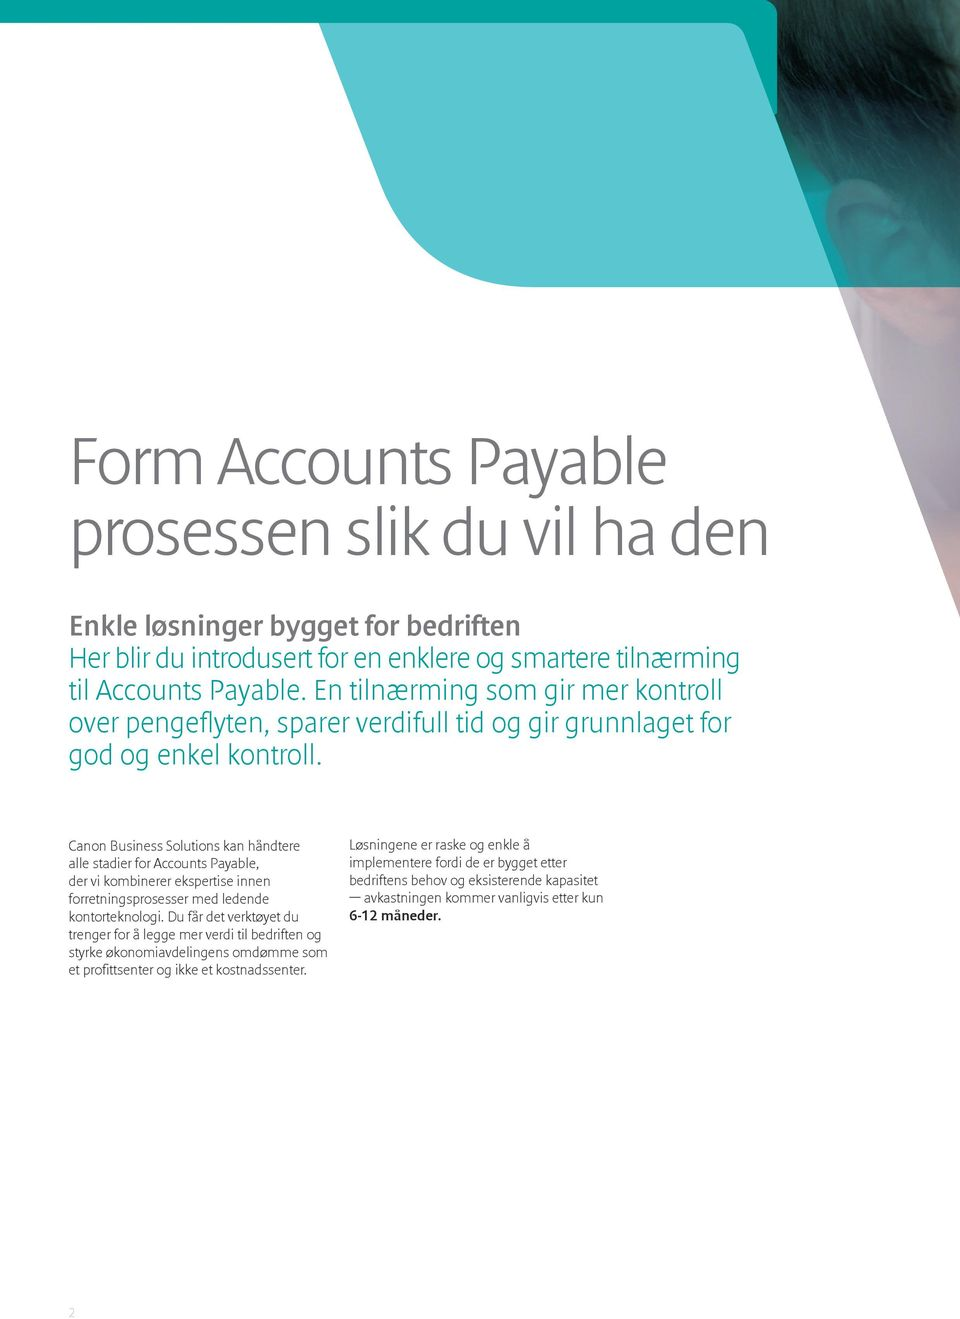 Canon Business Solutions kan håndtere alle stadier for Accounts Payable, der vi kombinerer ekspertise innen forretningsprosesser med ledende kontorteknologi.